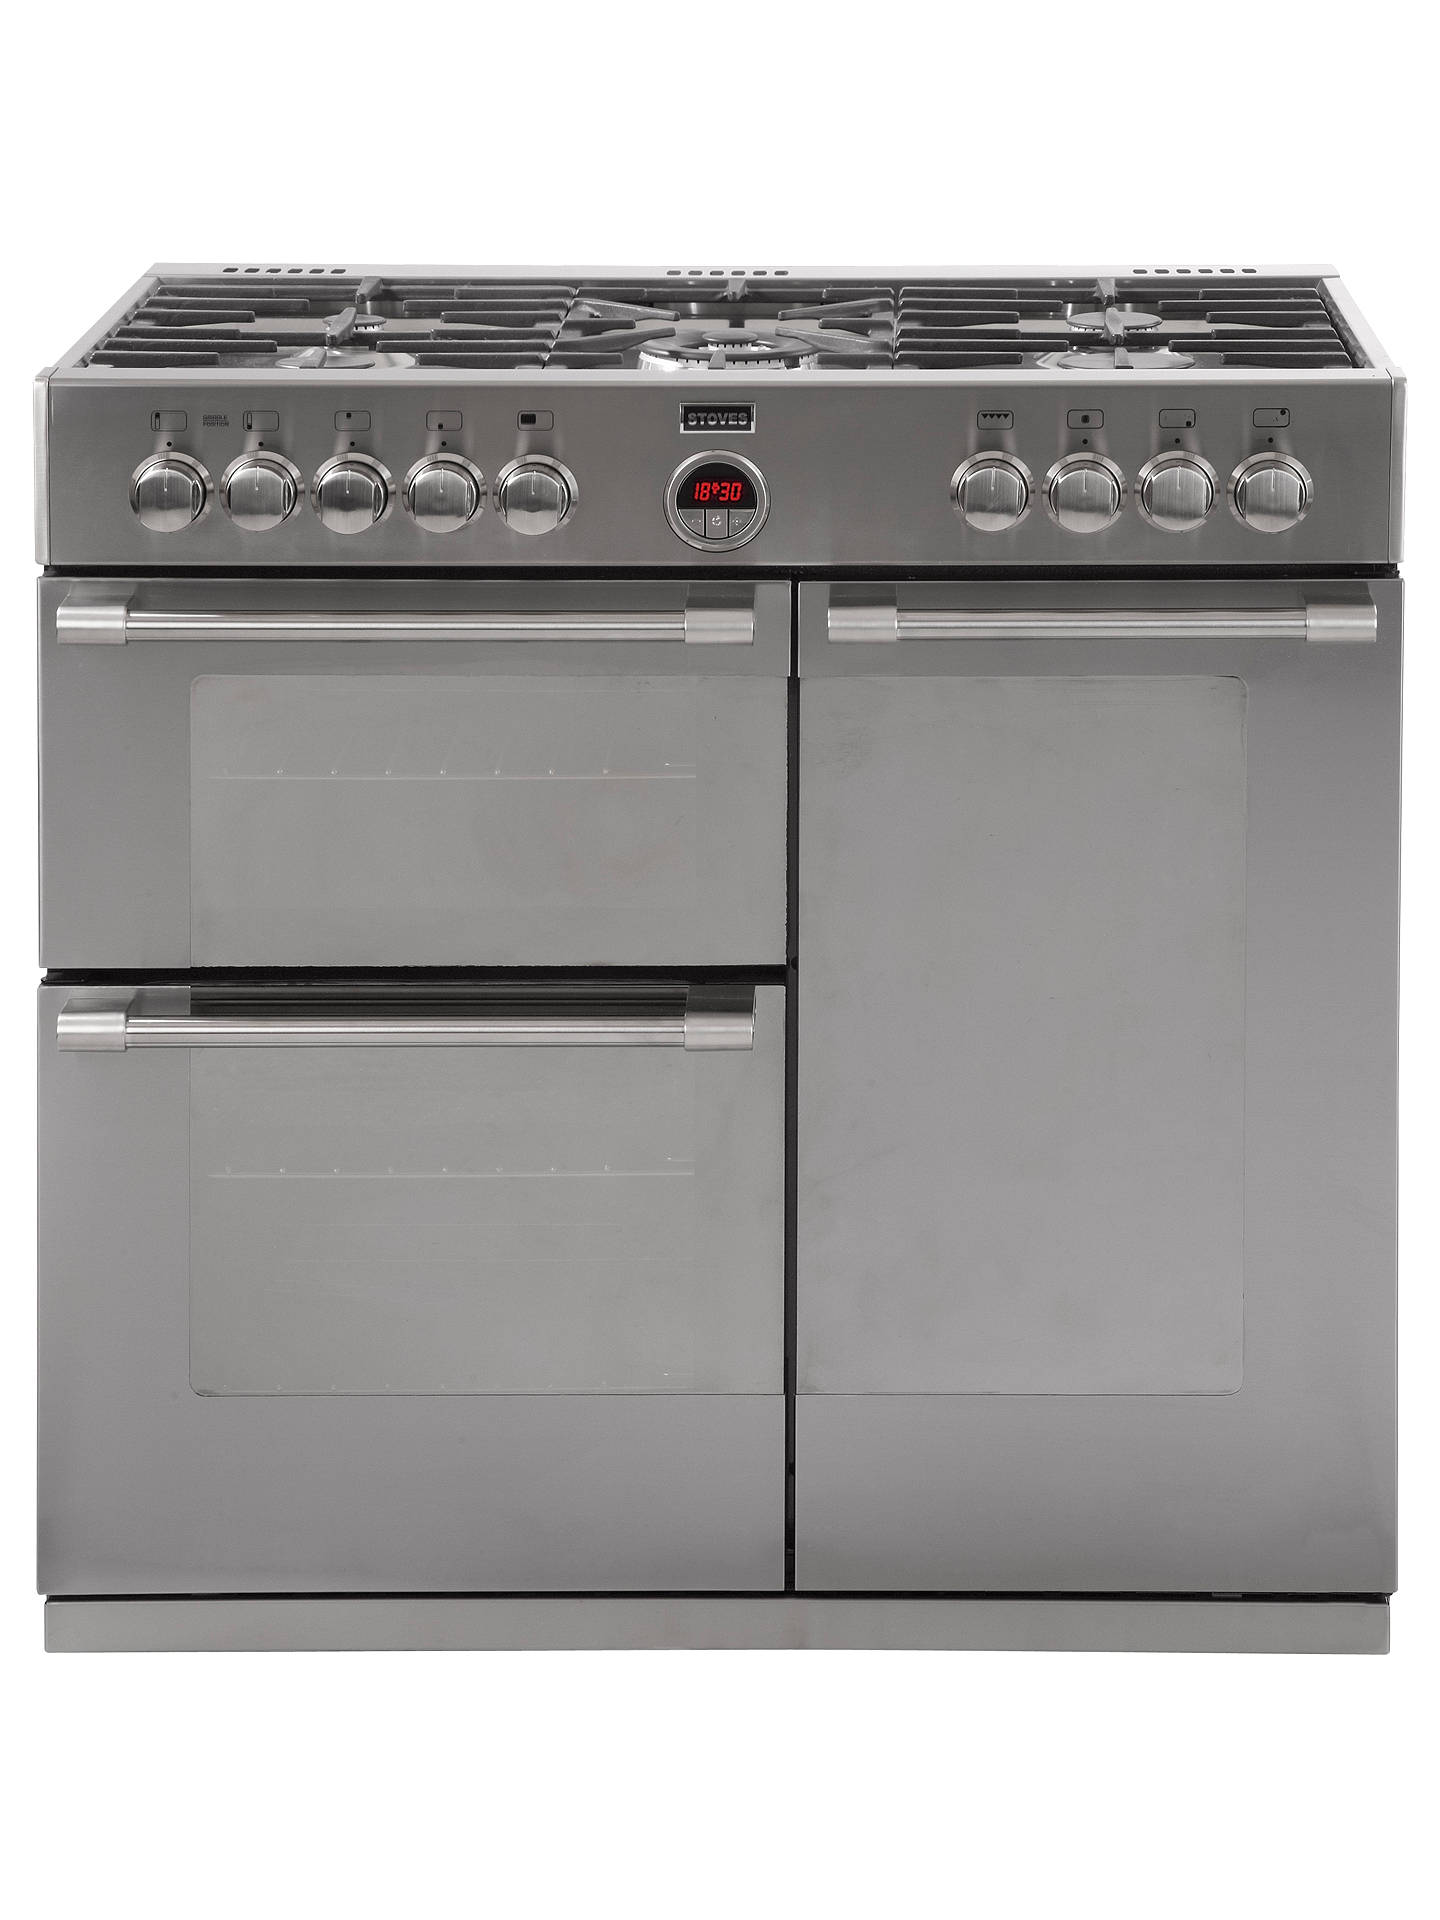 stoves sterling 900dft dual fuel range cooker stainless steel at rh johnlewis com